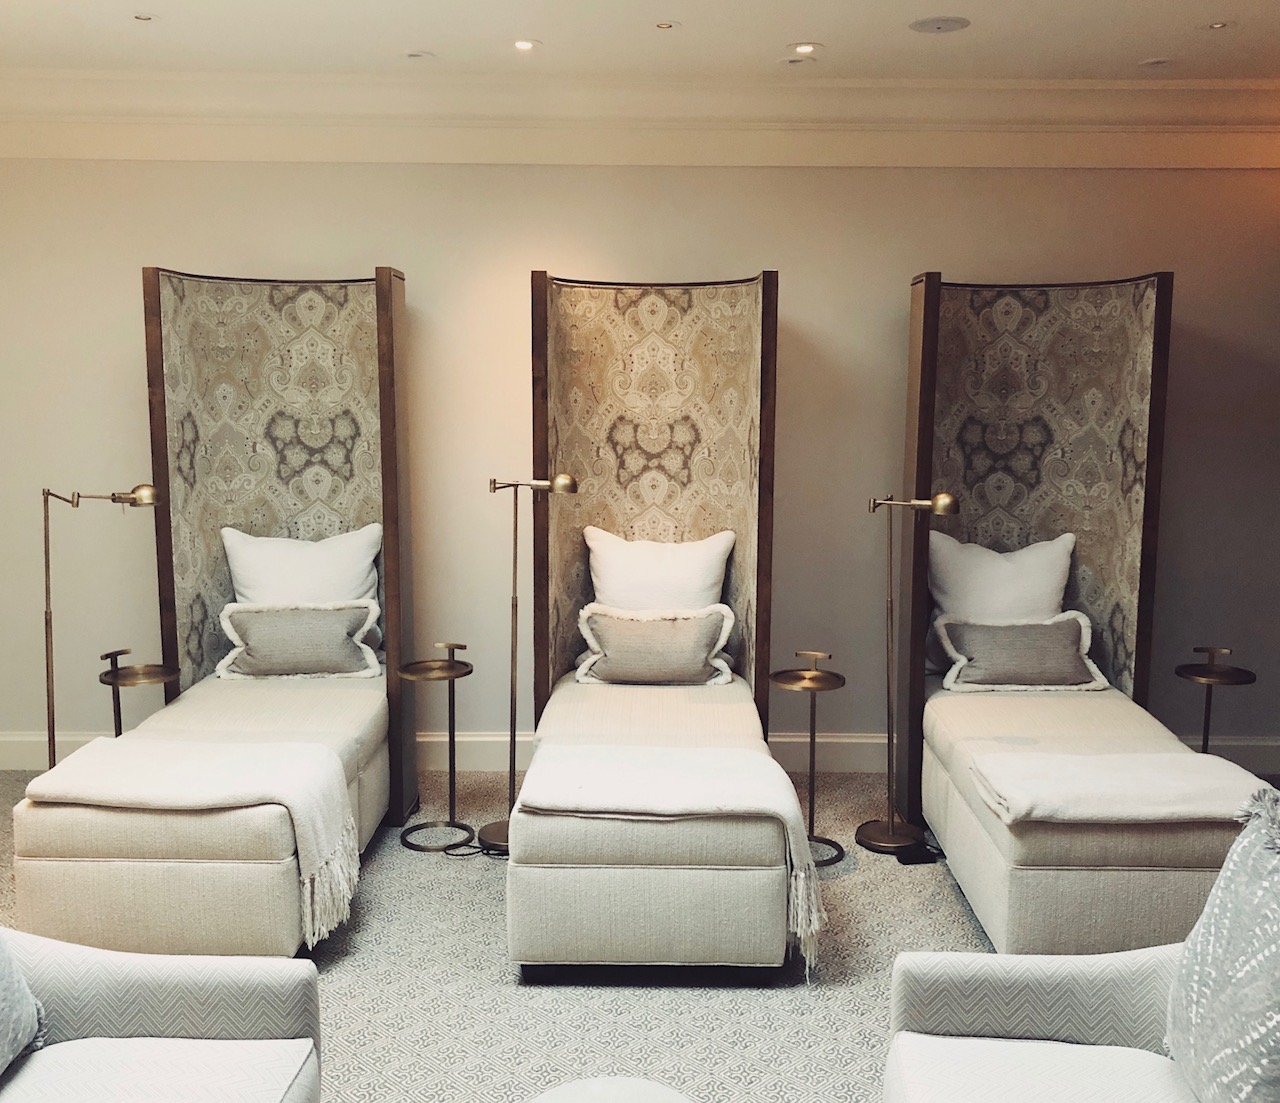 Spa MBH - Montage Beverly Hills